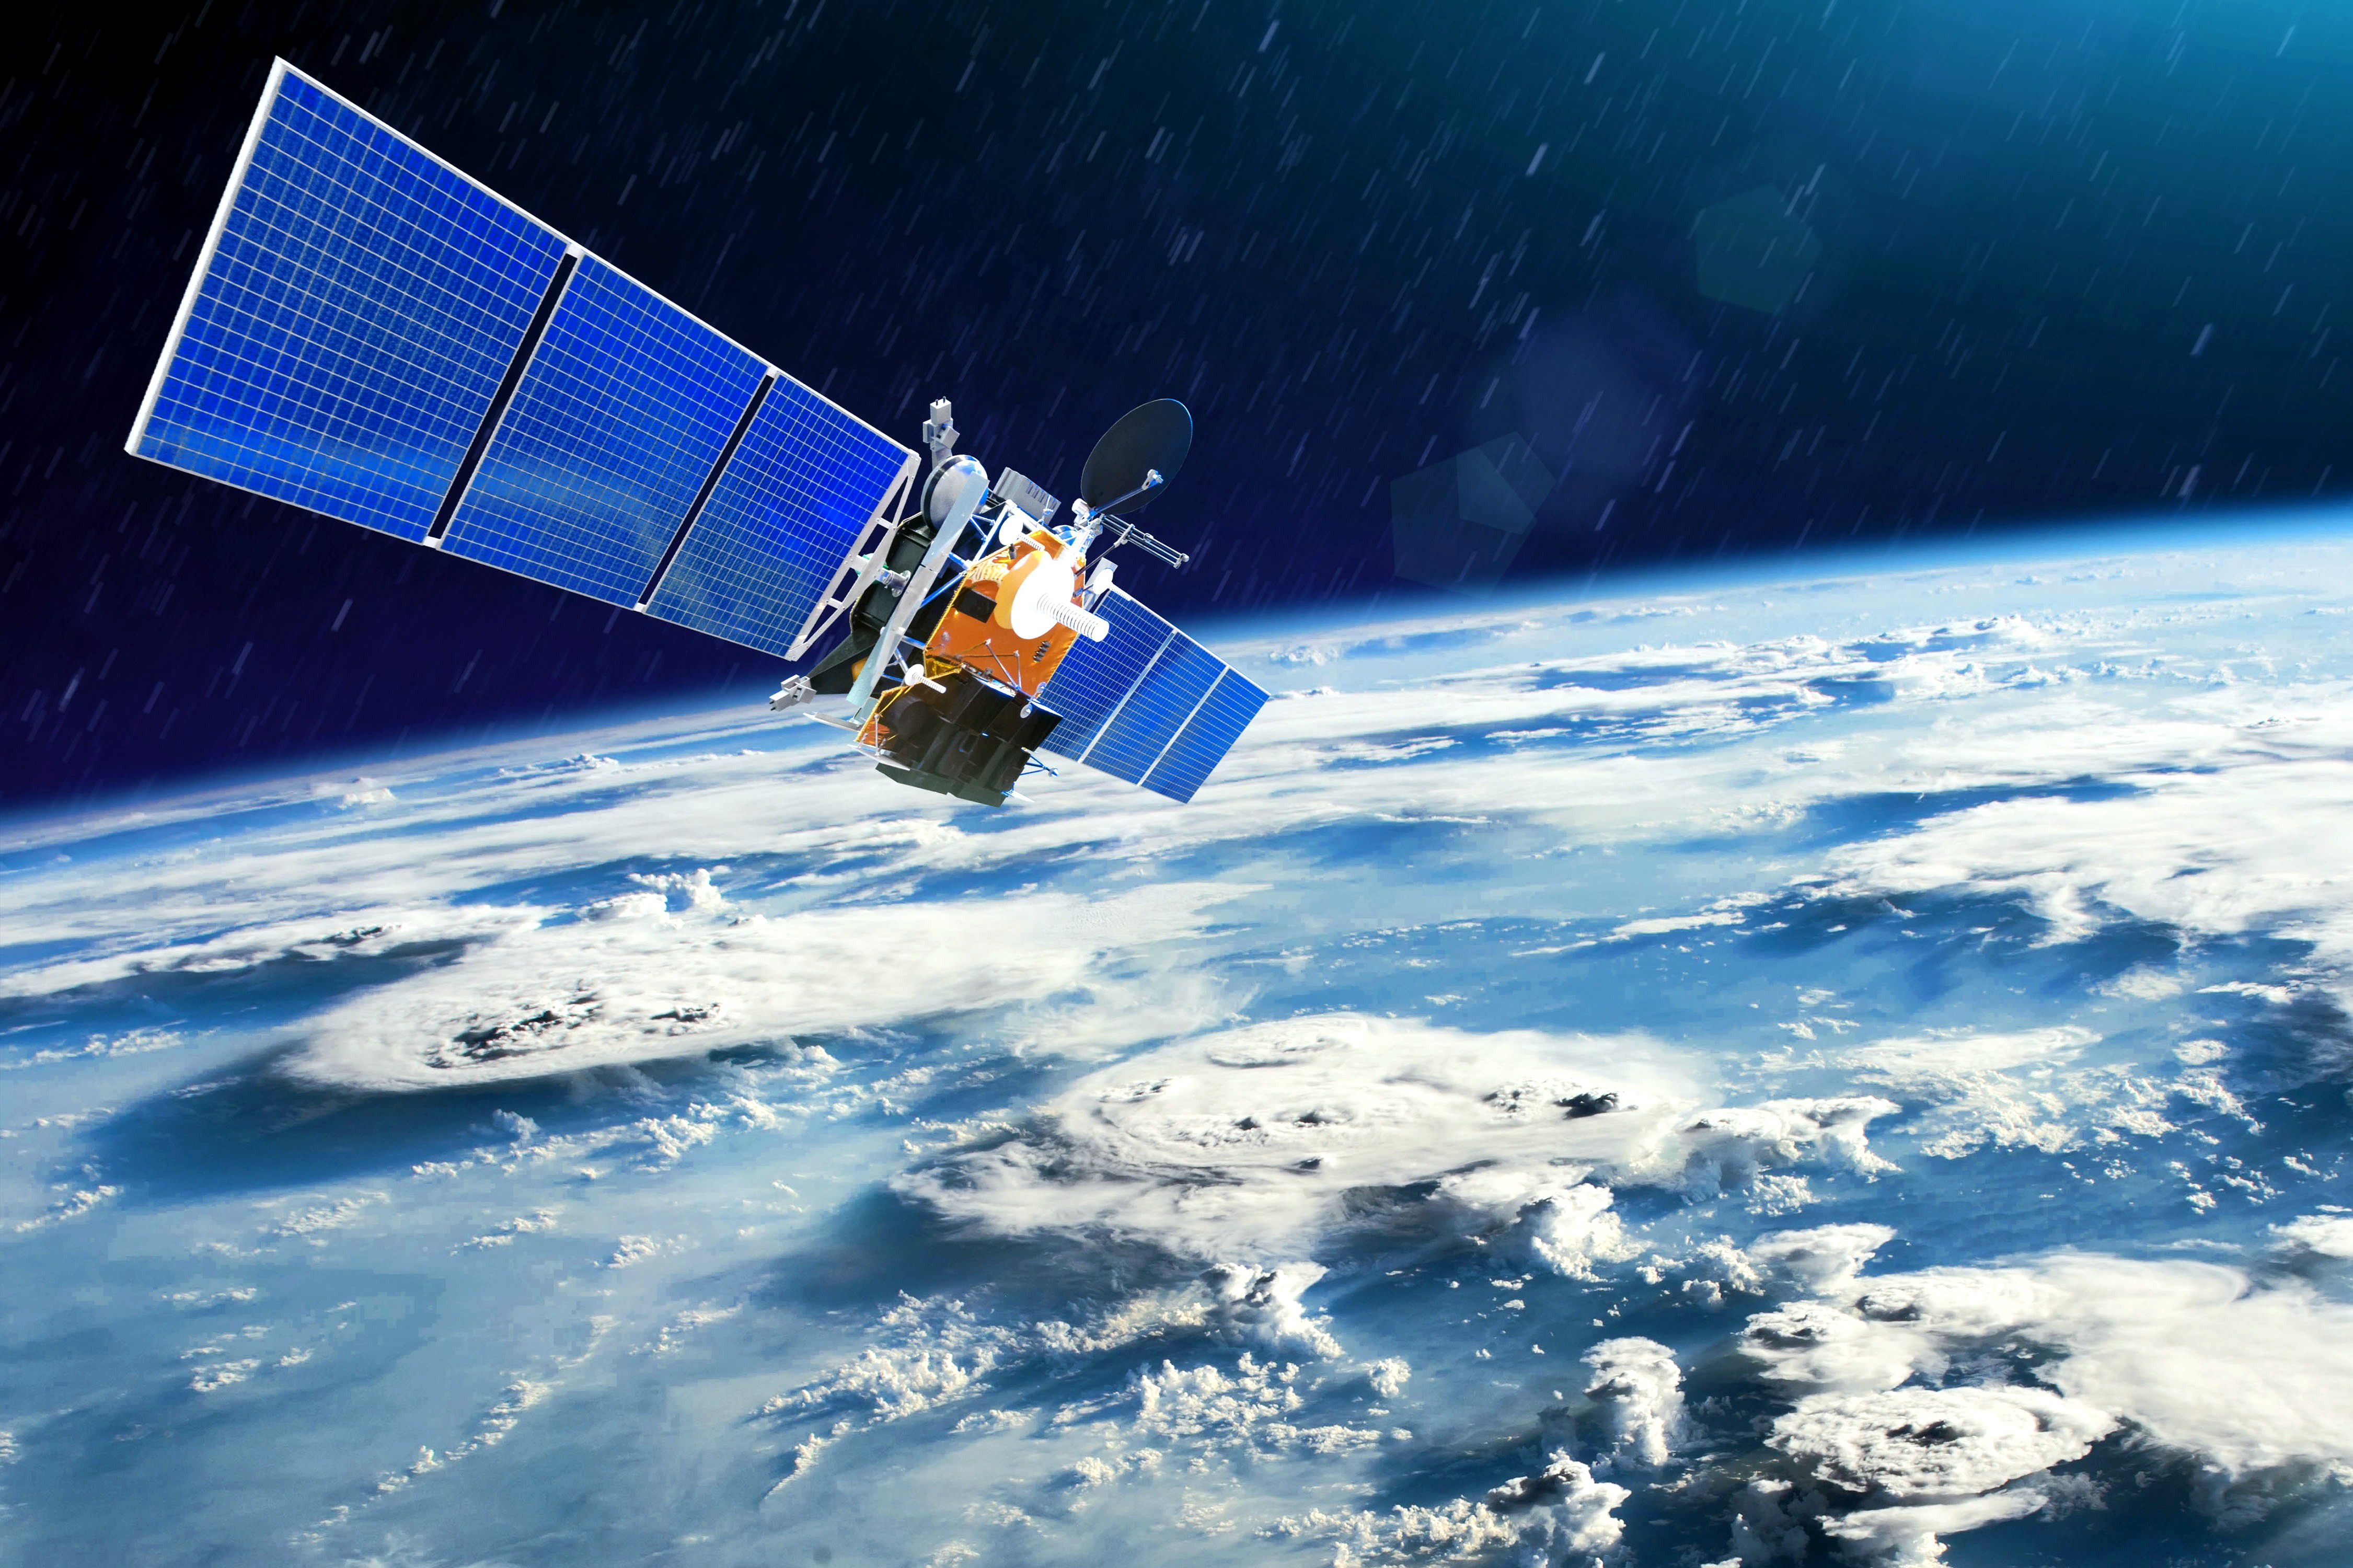 A weather satellite for observing powerful thunderstorms and tornadoes from space orbits the planet